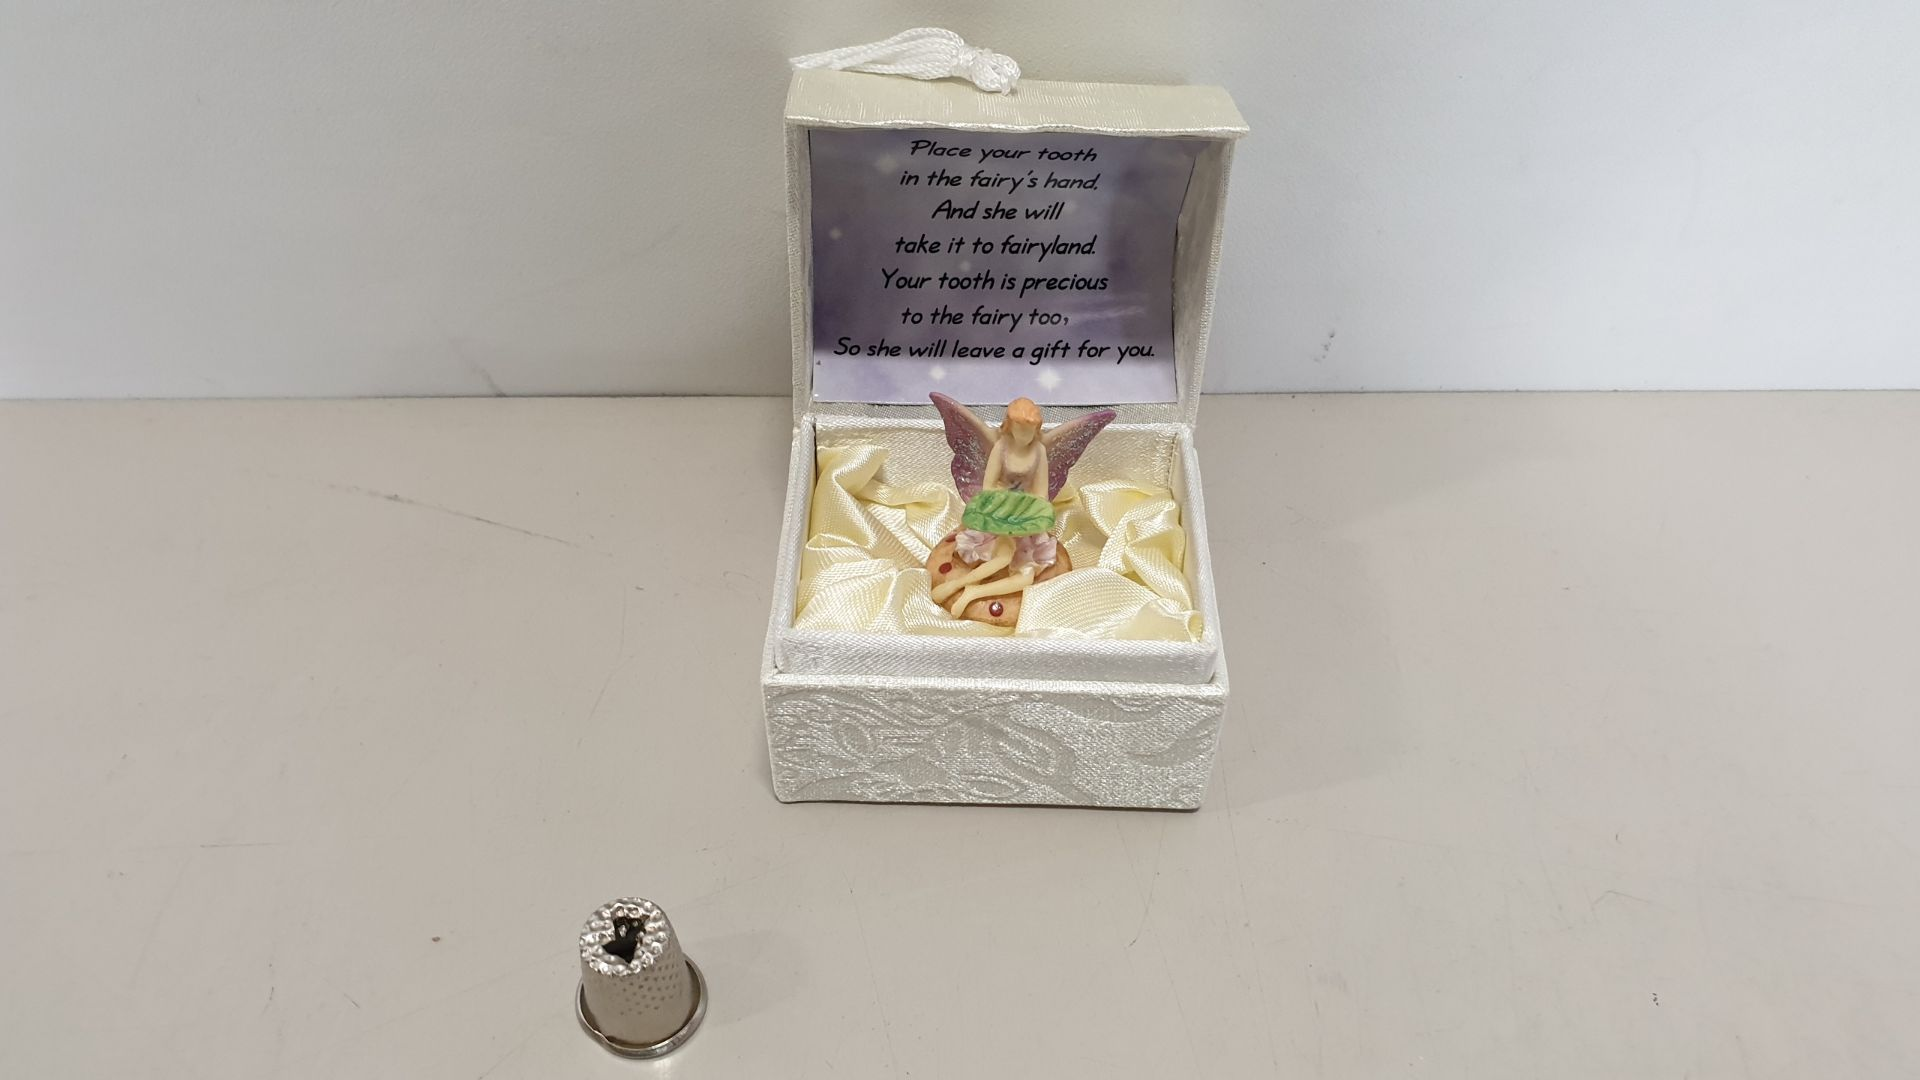 Lot 636 - 192 X BRAND NEW 'YOUR TOOTH BOX' WITH MESSAGE AND FAIRY CERAMIC FIGURE - IN 2 BOXES